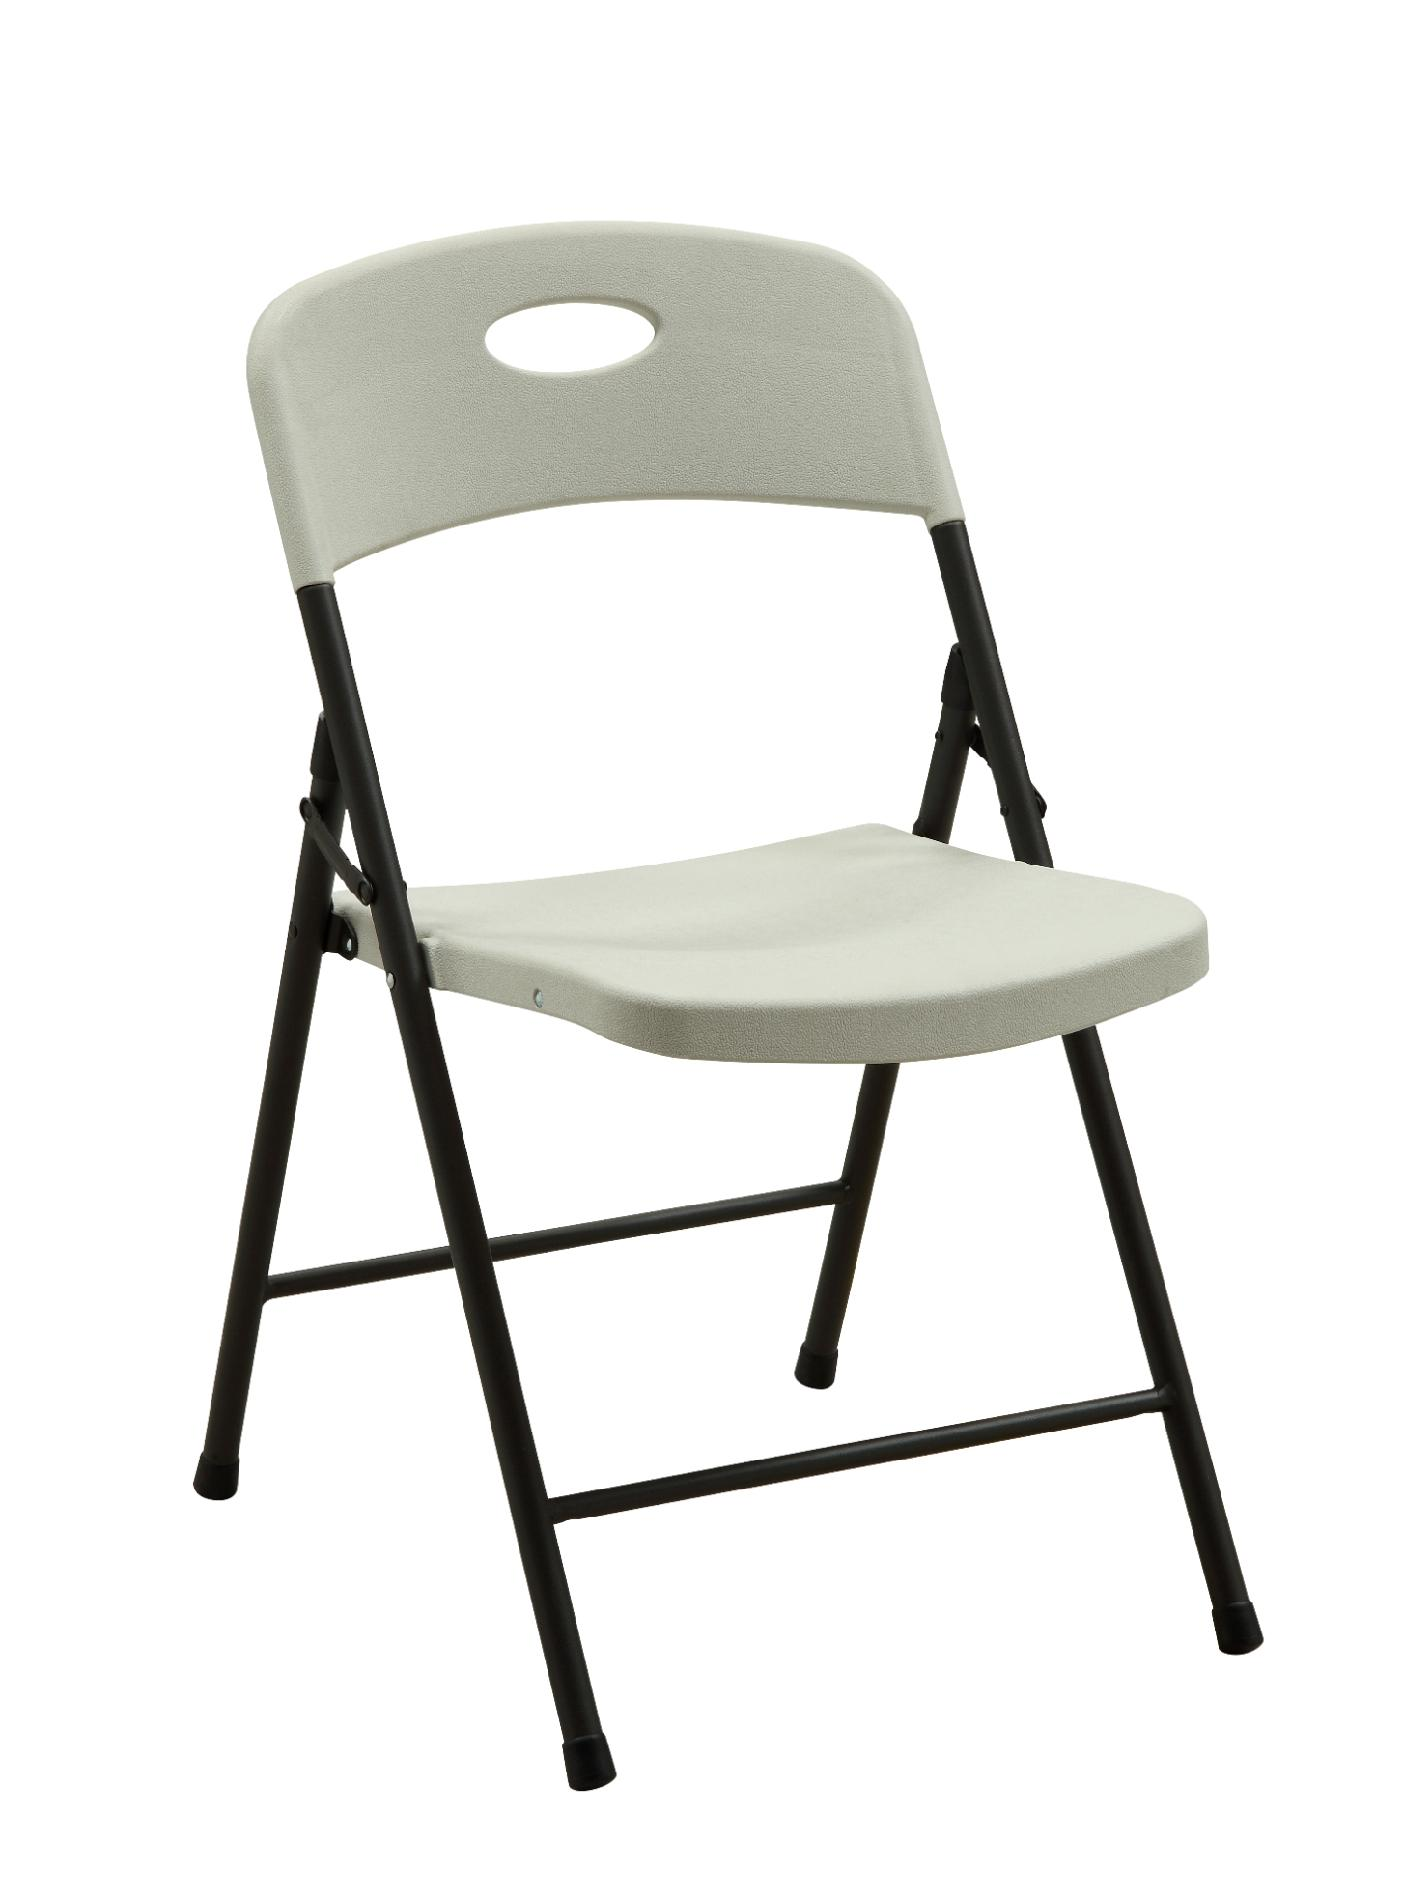 outdoor chairs kmart high chair 3 months lightweight folding keeping your guests in good cheer with